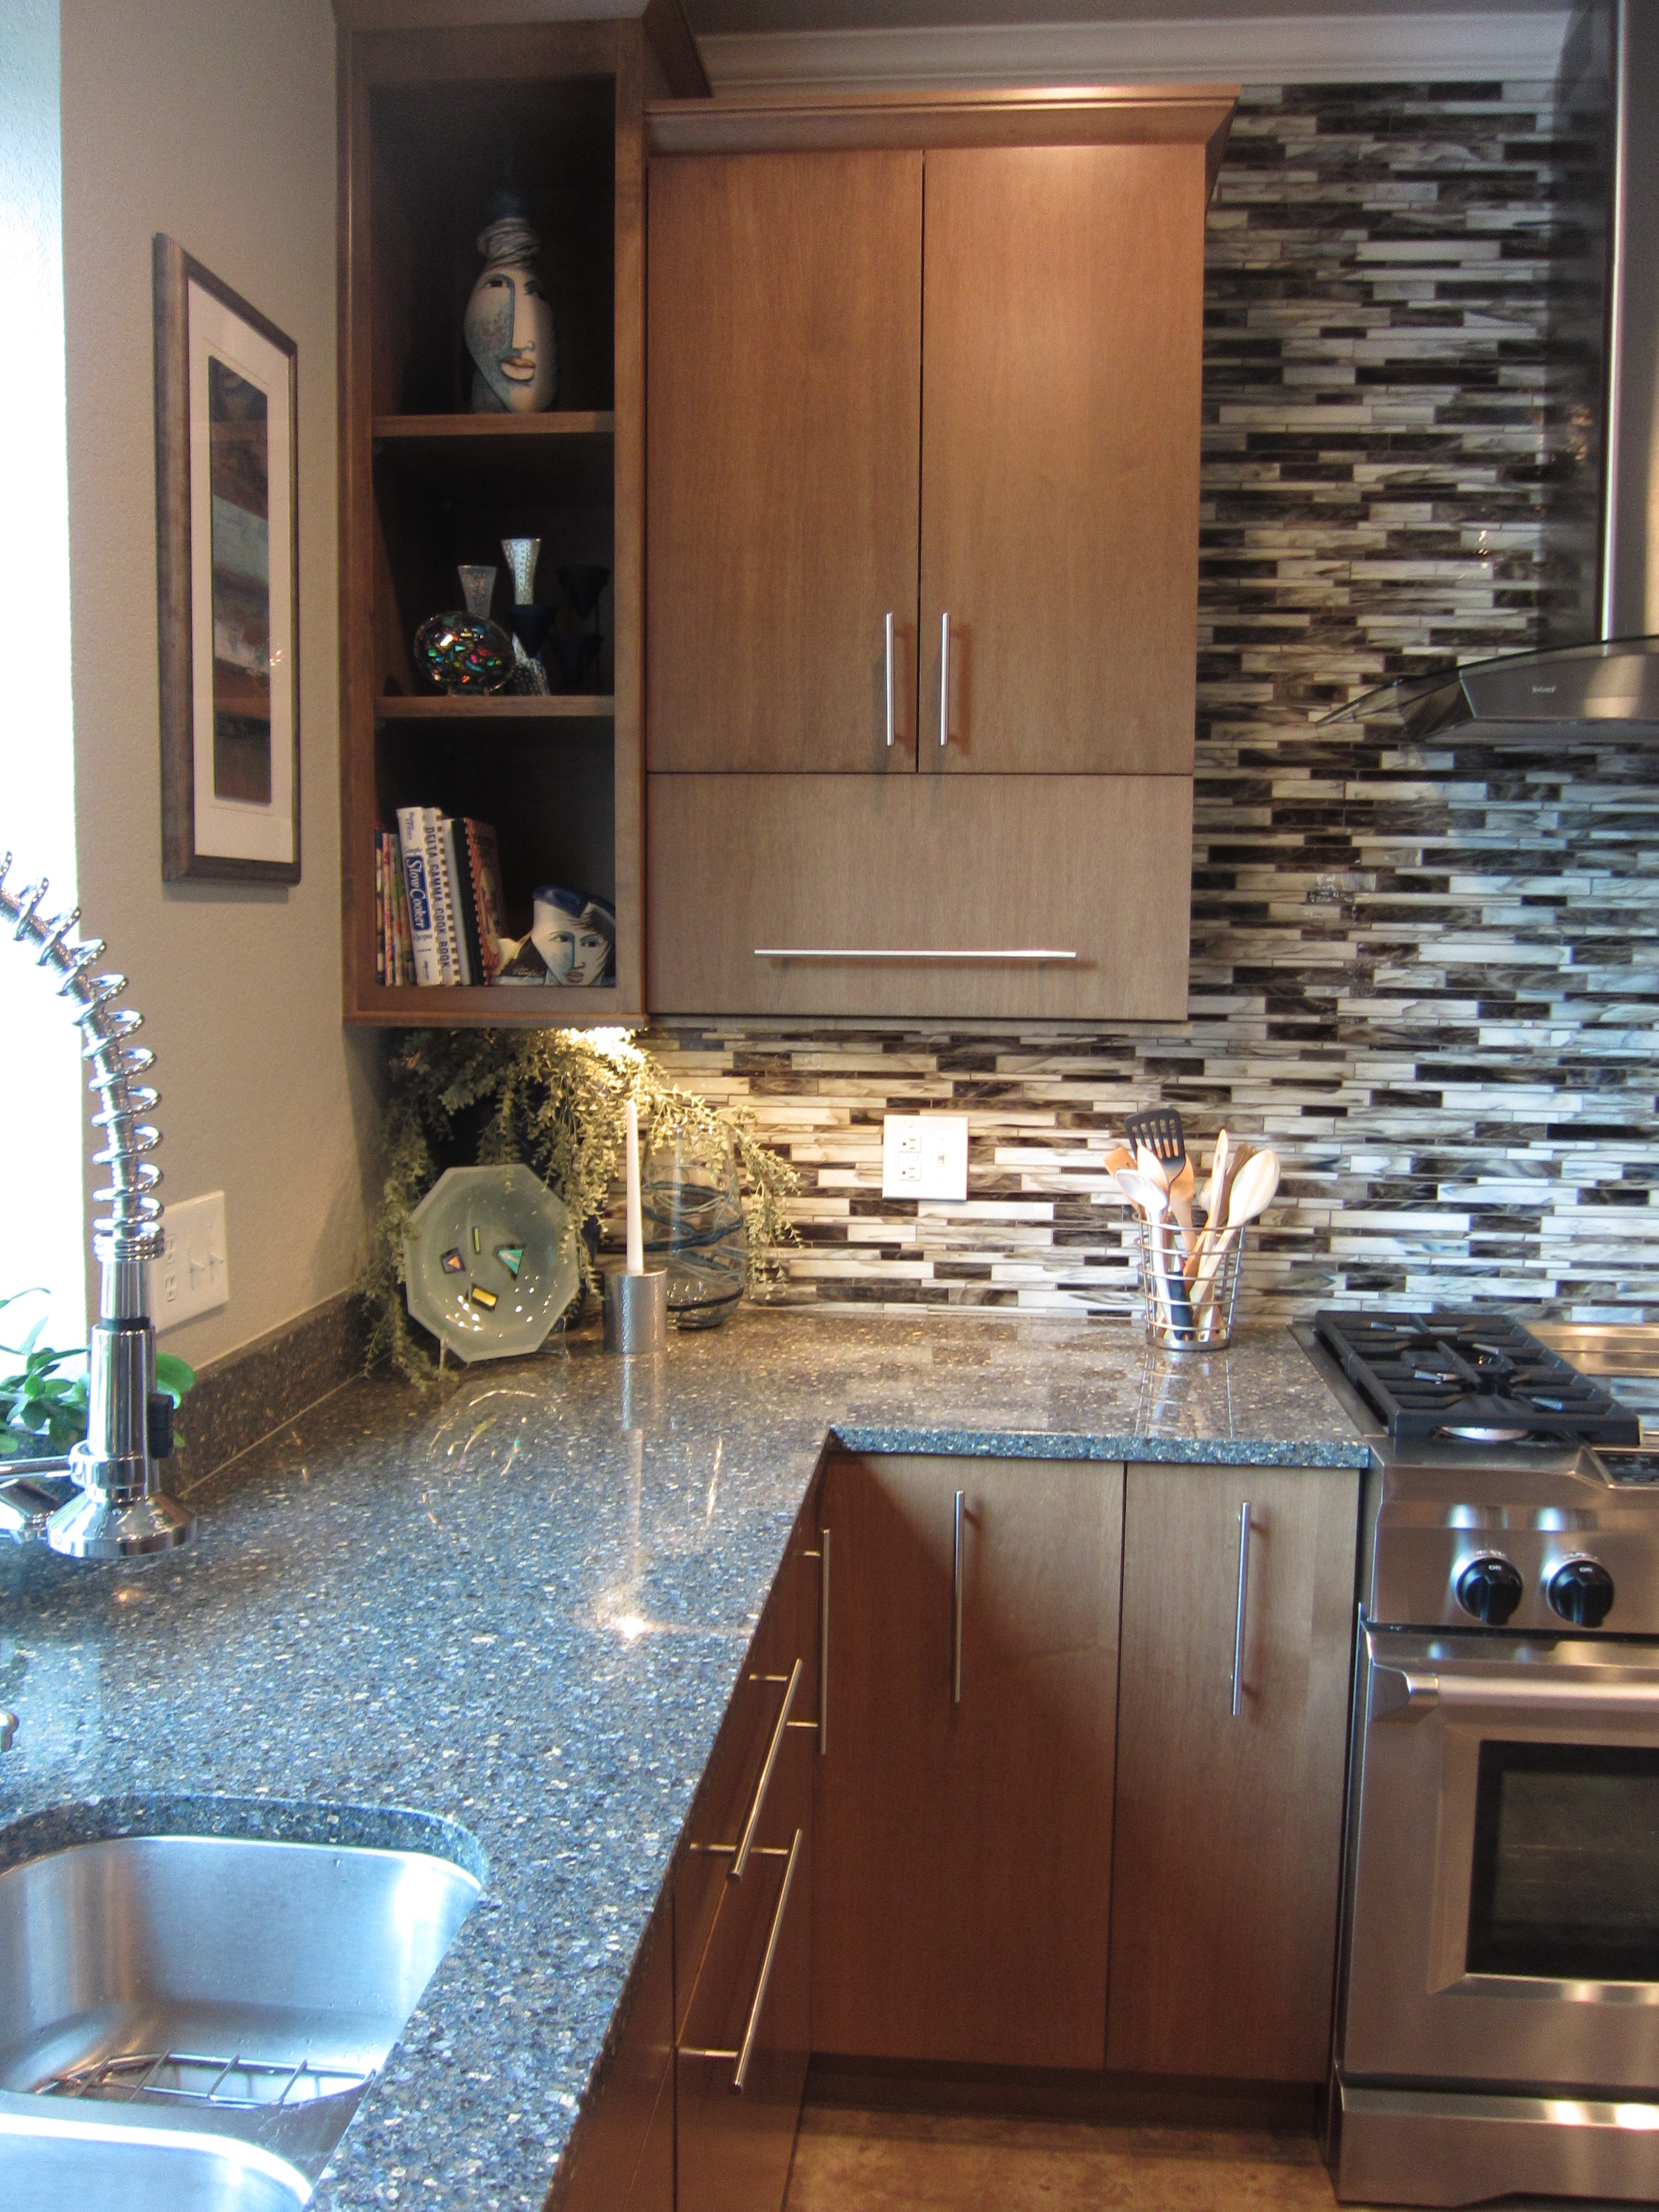 dimensions with pictures perfect kitchen backsplash and incredible countertops countertop pertaining granite backsplashes counters combinations